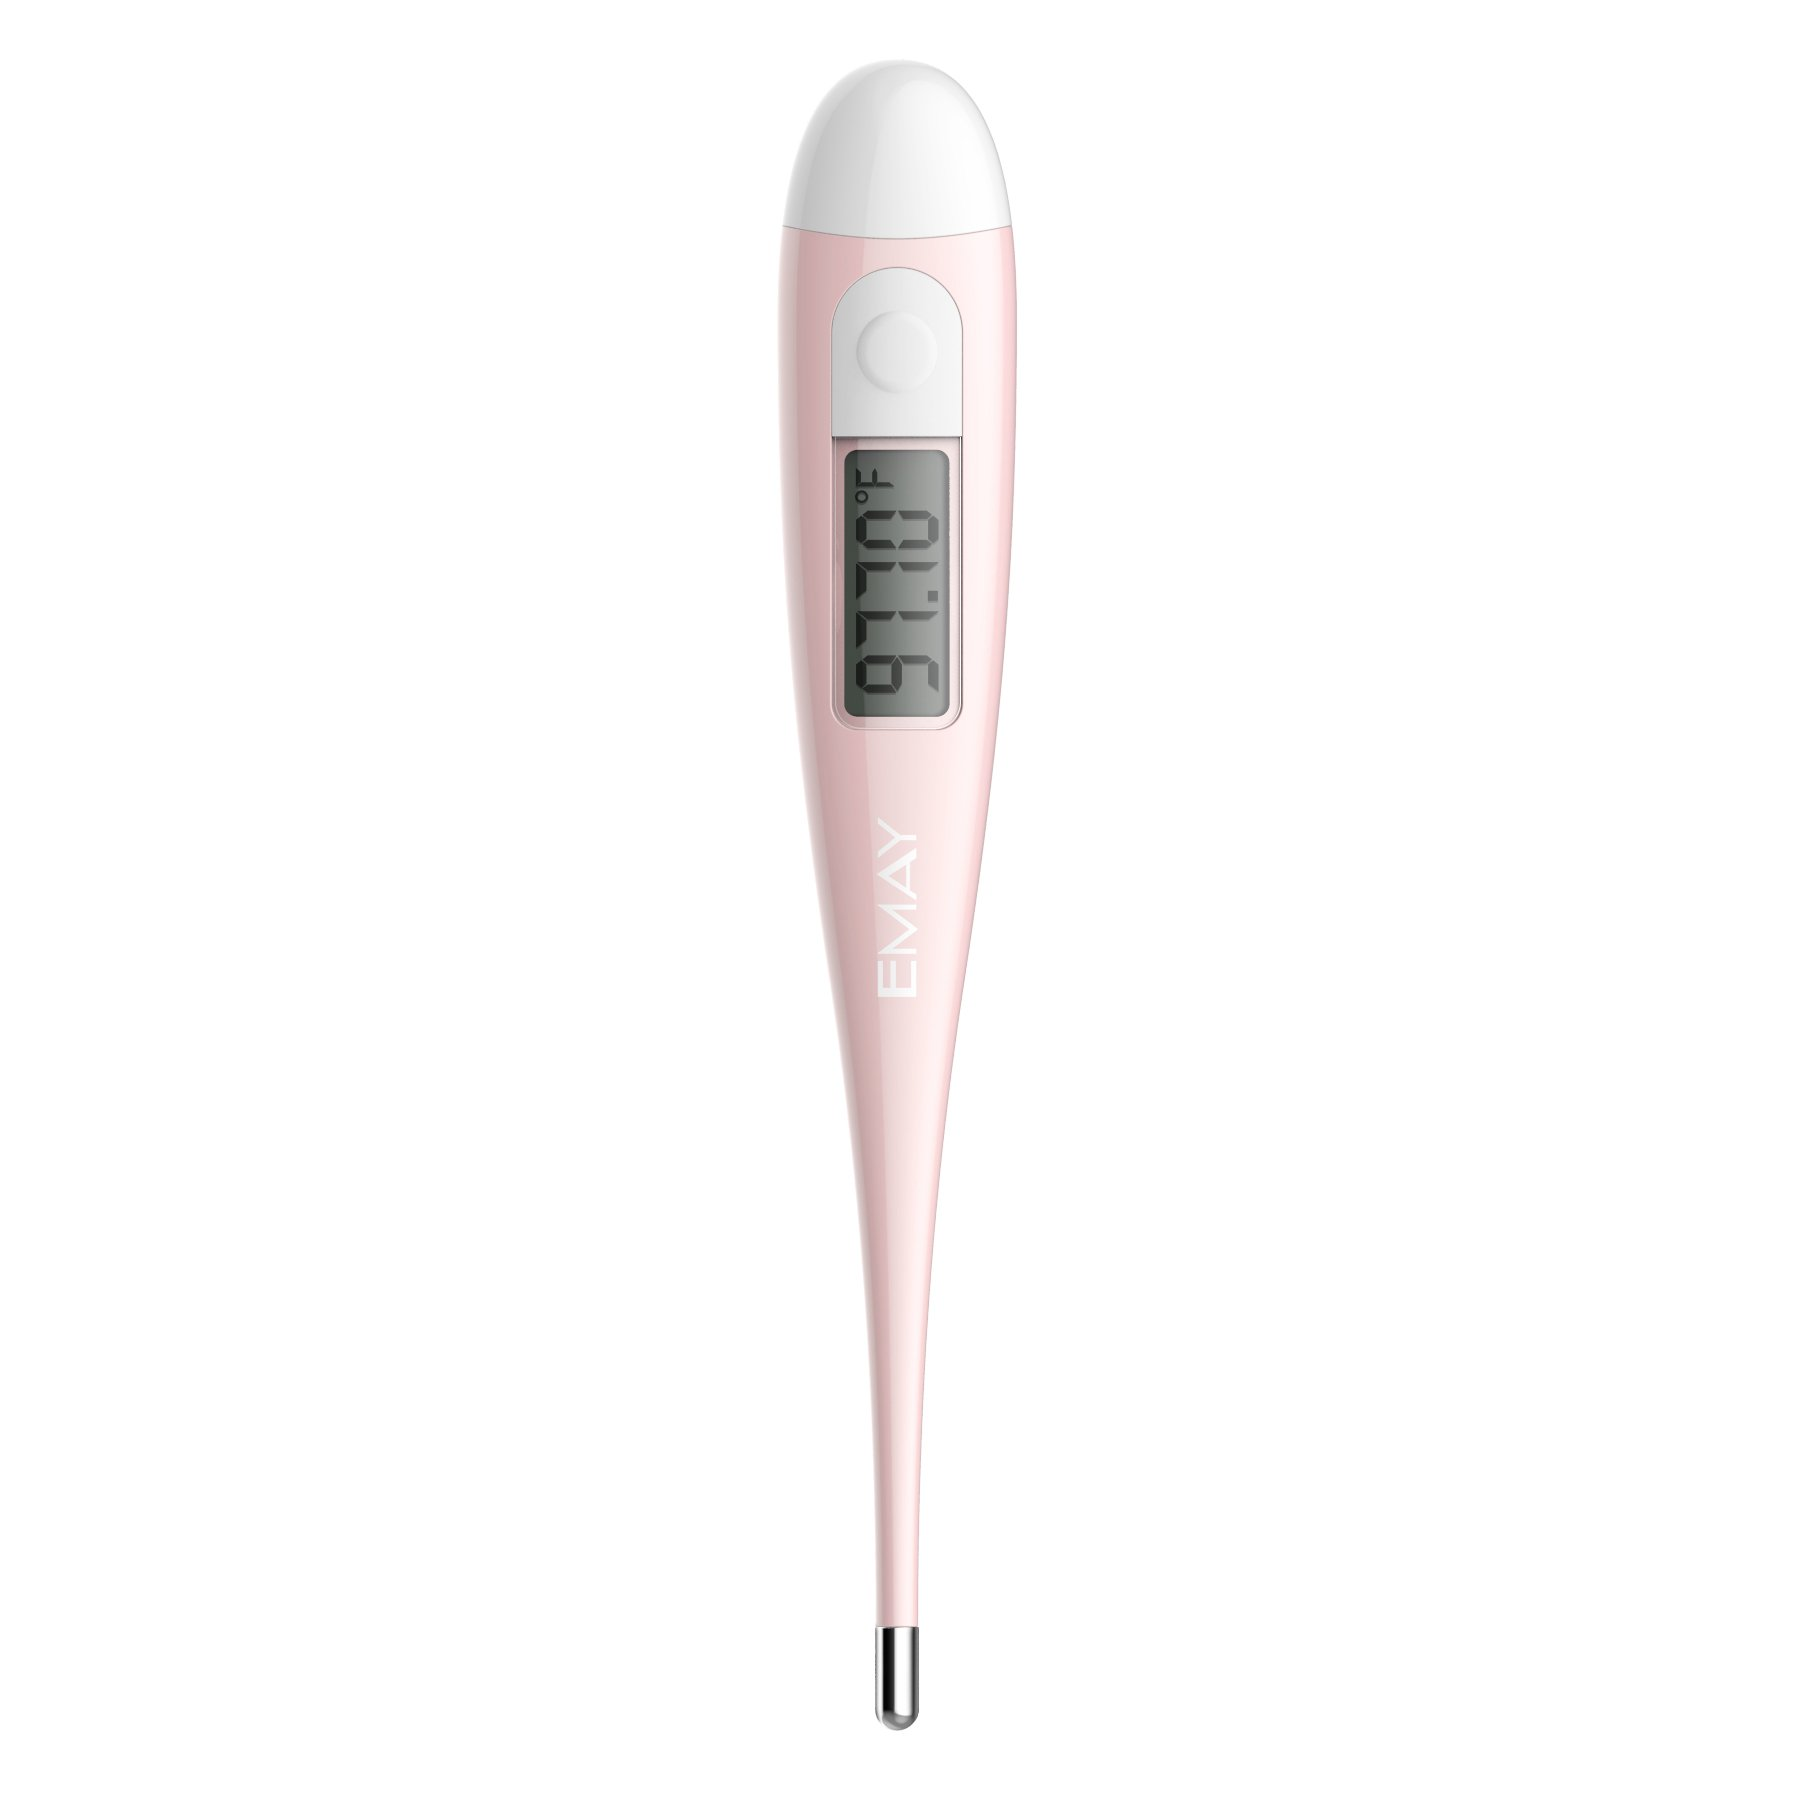 Basal Thermometer by Emay, Clinical BBT Accurate 1/100th Degree, Basal Body Temperature Thermometer for Natural Family Planning (No Backlight) by Emay (Image #2)